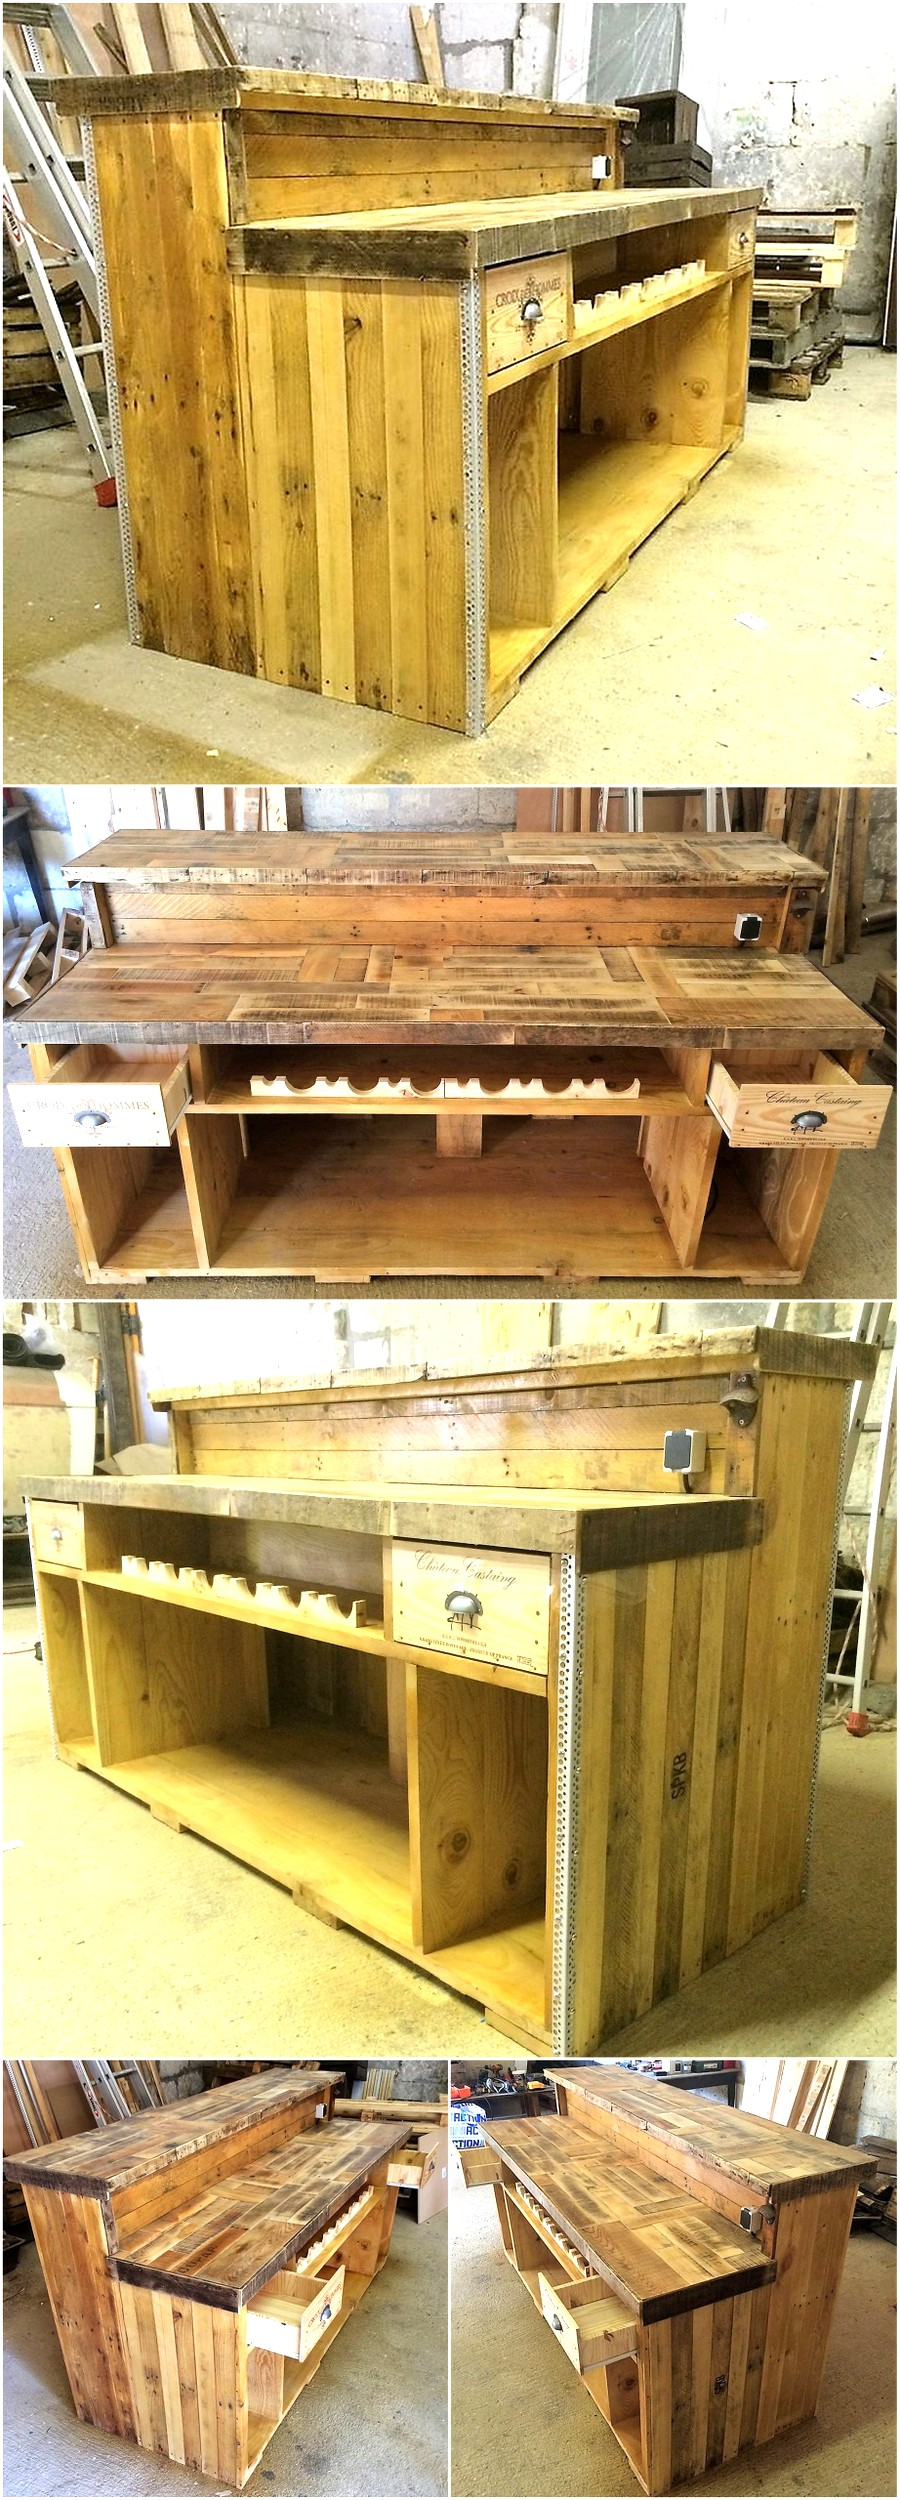 Awesome Plan for Wooden Pallet Bar